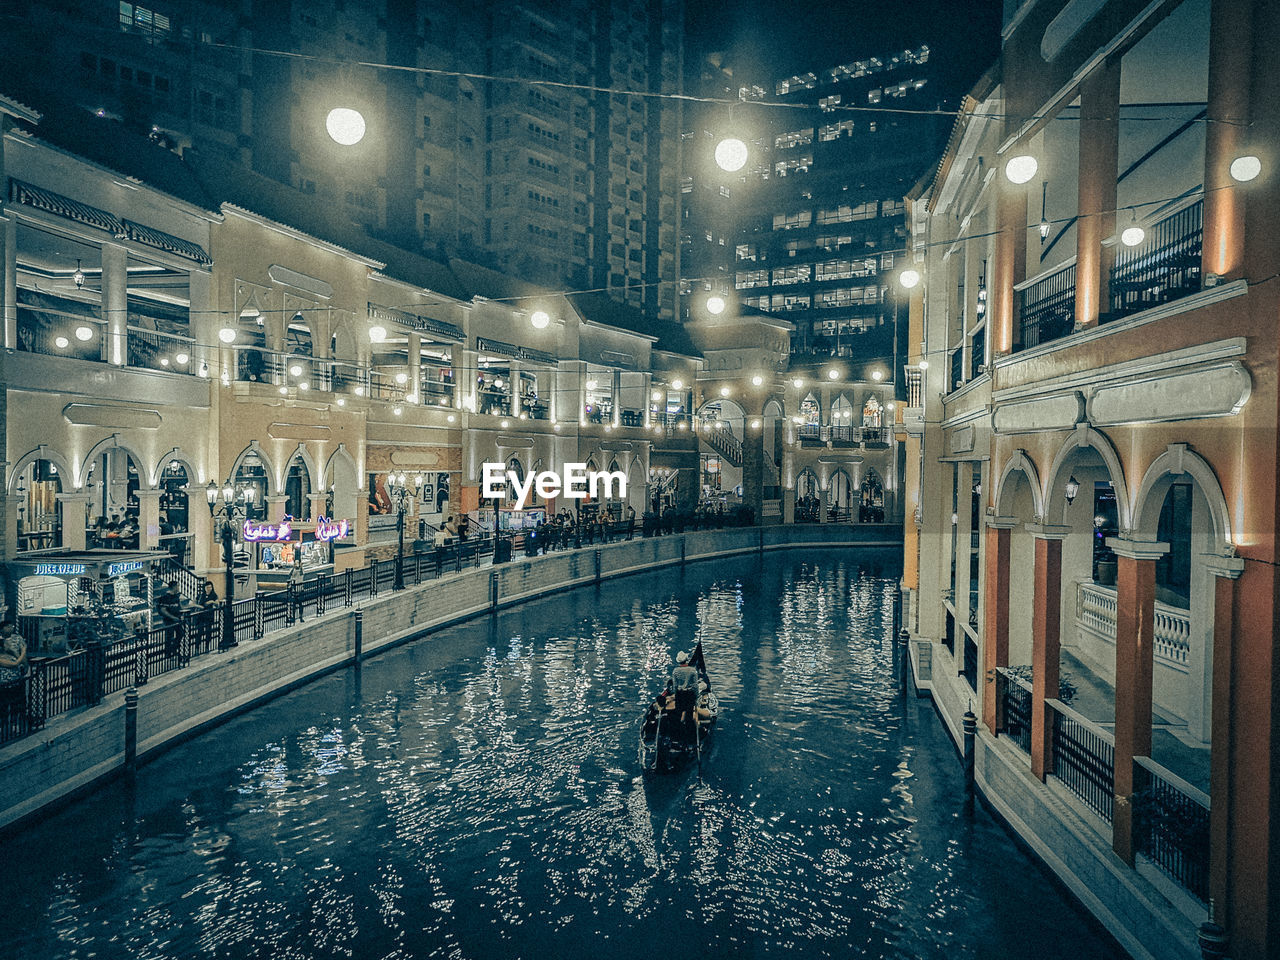 water, architecture, building exterior, built structure, illuminated, city, night, transportation, waterfront, nature, real people, incidental people, people, street light, nautical vessel, building, street, mode of transportation, lifestyles, canal, swimming pool, nightlife